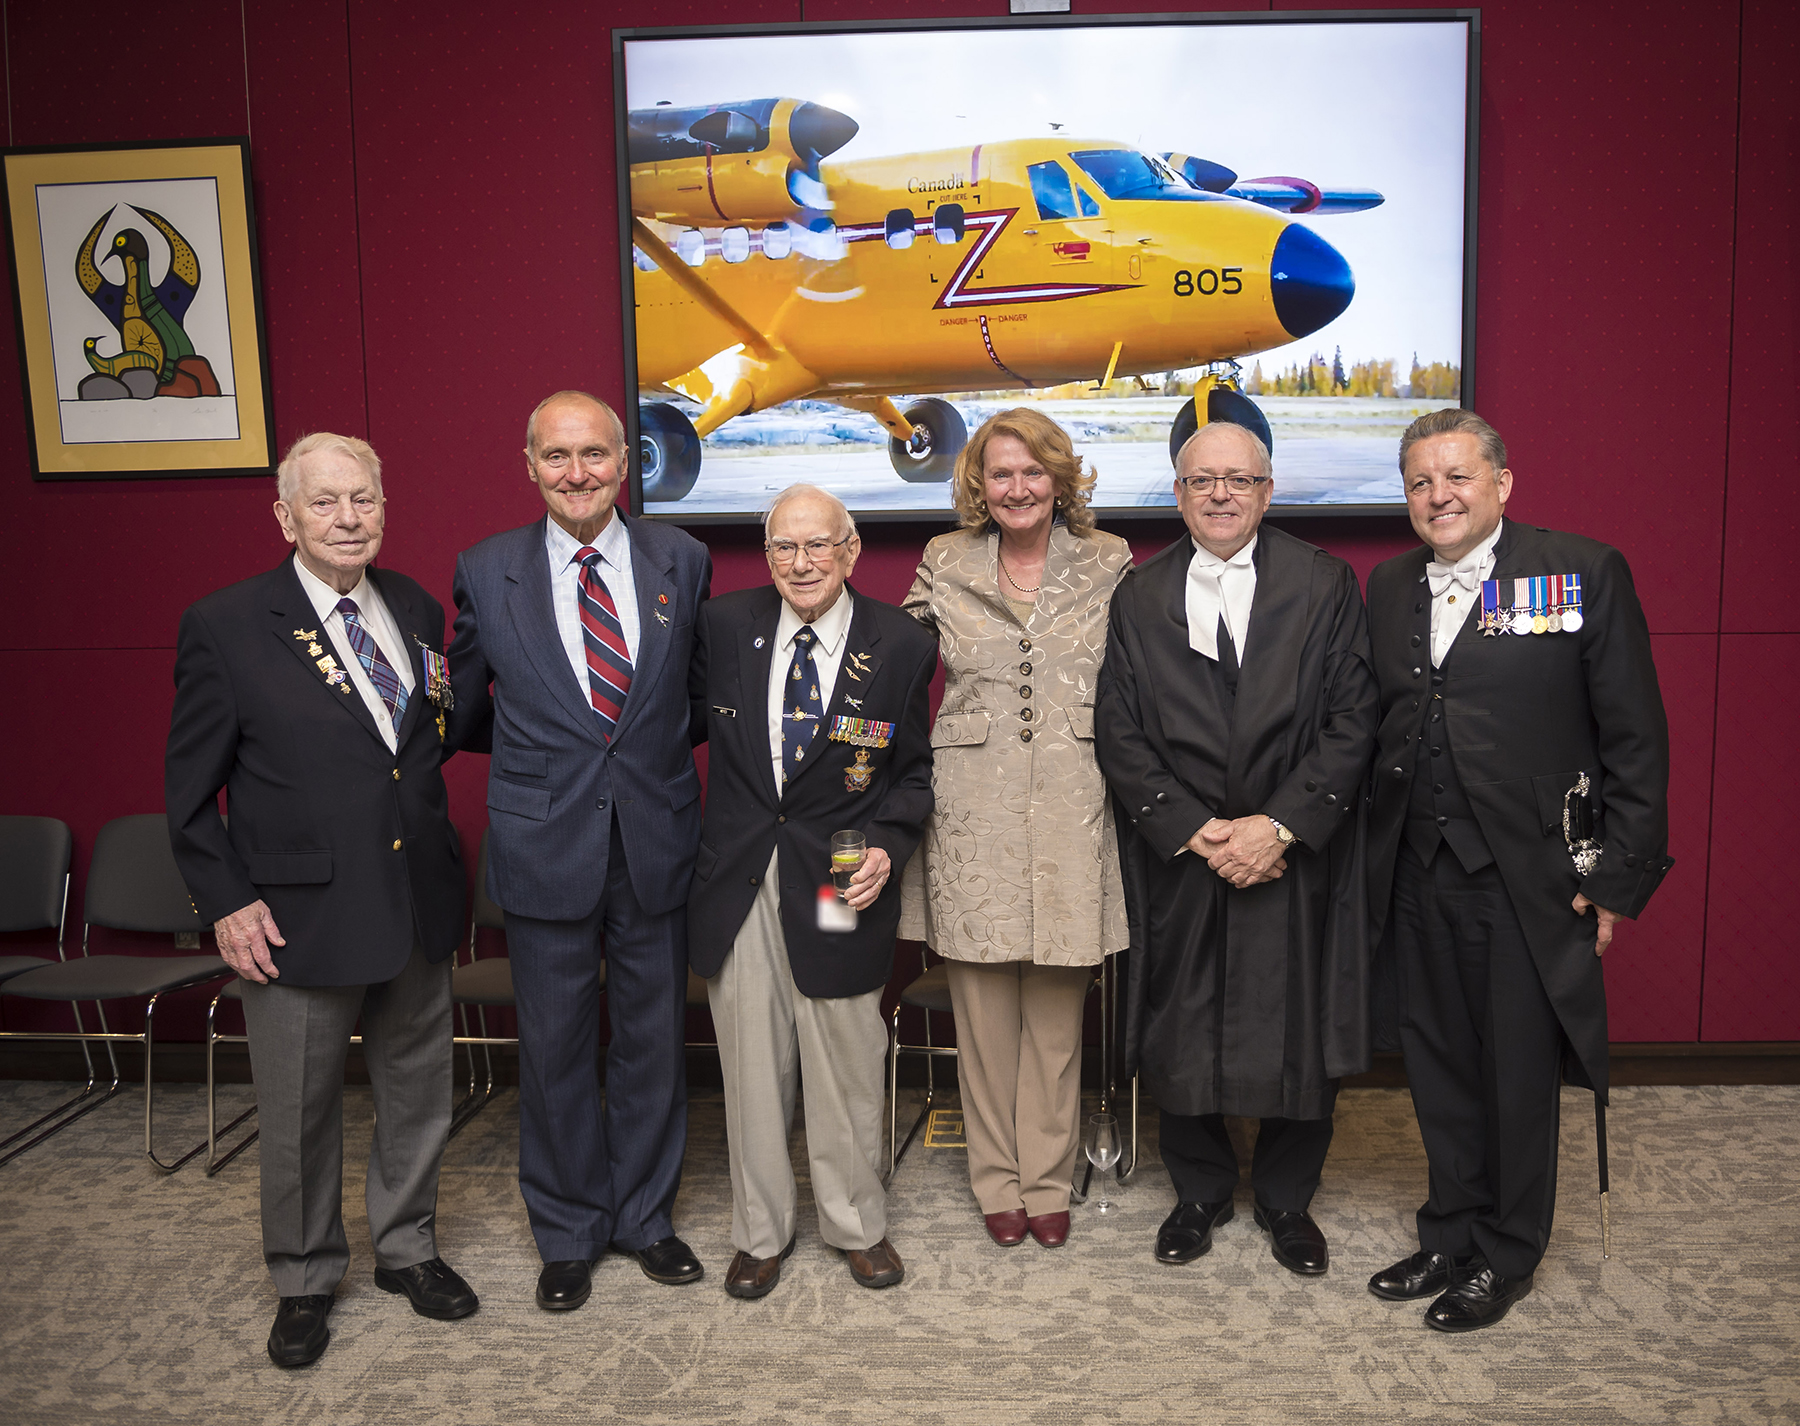 On June 4, 2019, during Air Force Day on The Hill in Ottawa, Ontario, joined Parliamentarians and members of the Royal Canadian Air Force for Air Force Day on Parliament Hill. From left: D-Day veteran Bob Bradley; Senator Joseph Day; D-Day veteran Ronald Moyes; Member of Parliament Karen McCrimmon; The Honourable George J. Furey, Speaker of the Senate of Canada; and J. Greg Peters, Usher of the Black Rod. PHOTO: Corporal Desiree T. Bourdon, FA01-2019-0026-021